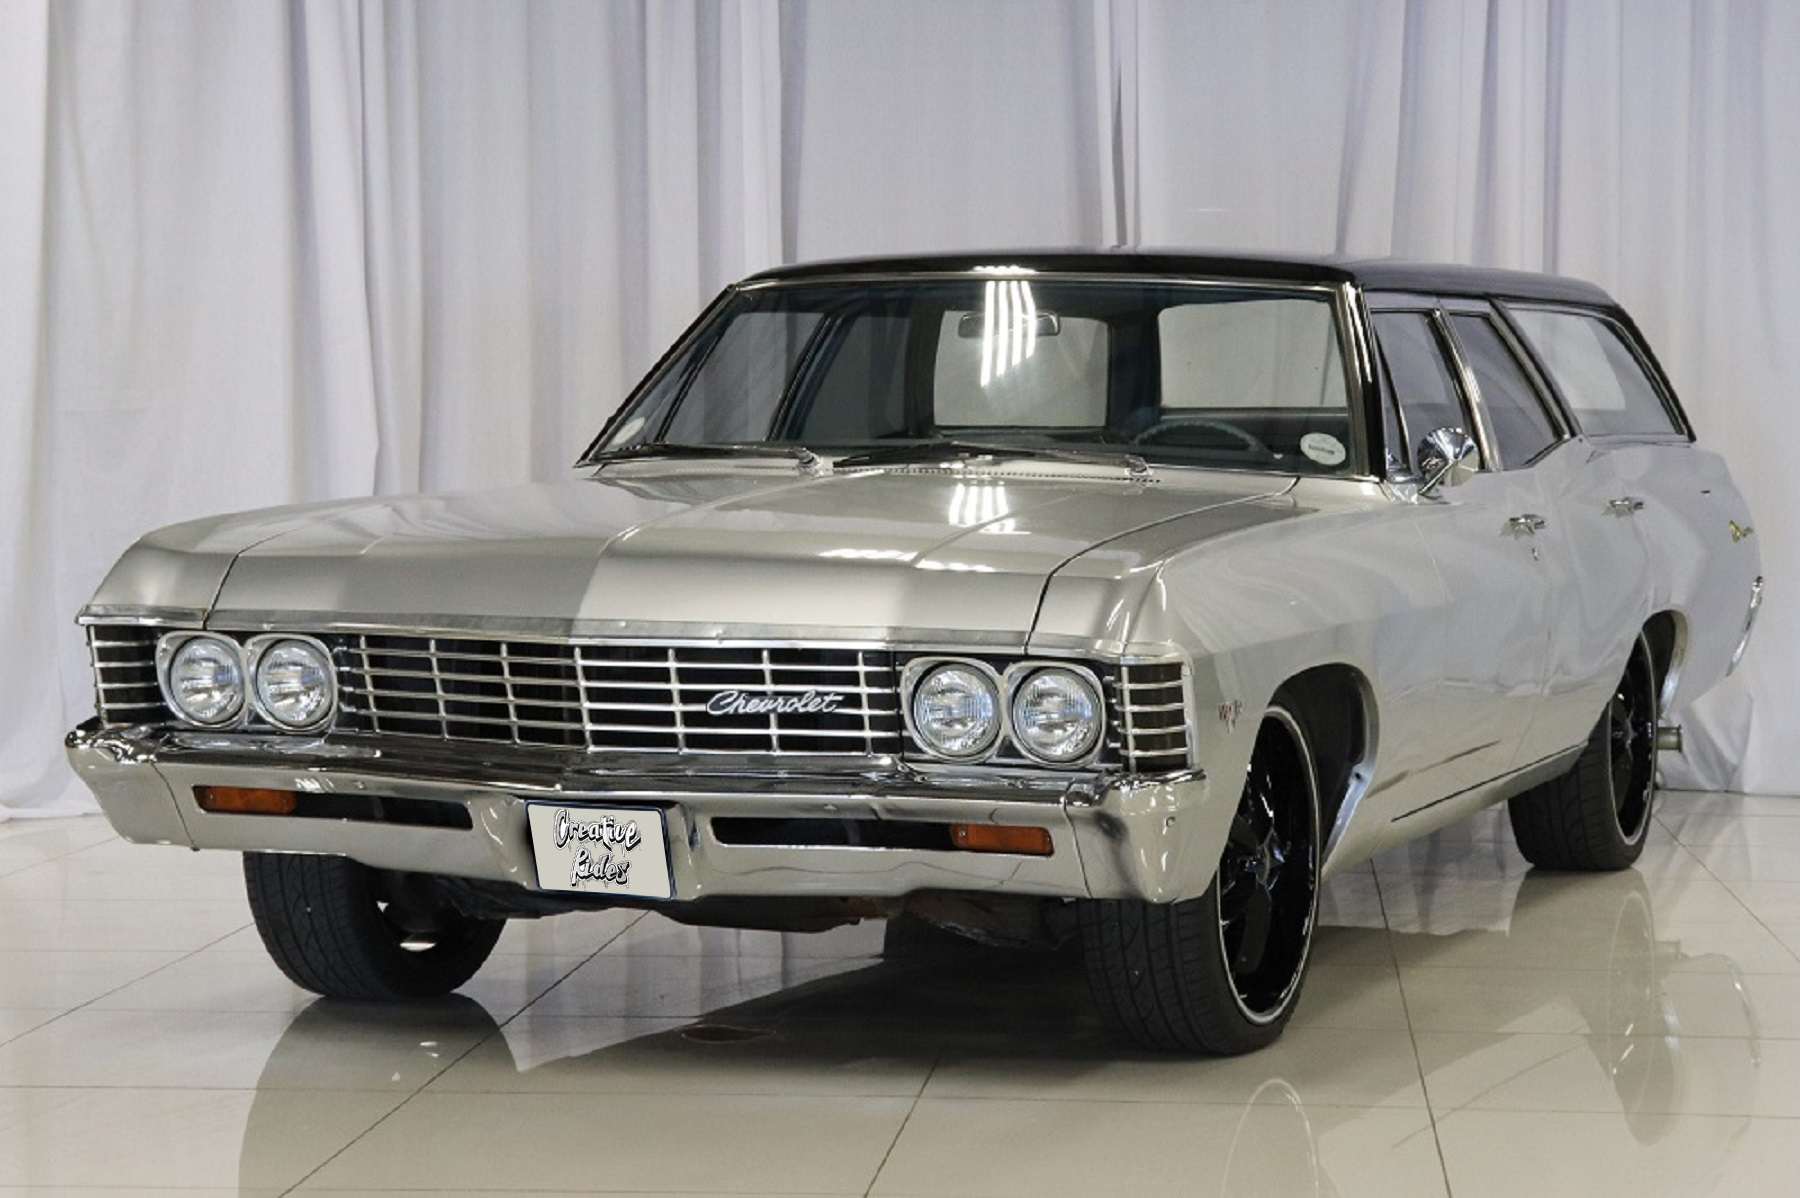 1968 Chevrolet Impala Station Wagon Creative Rides Custom Coupe